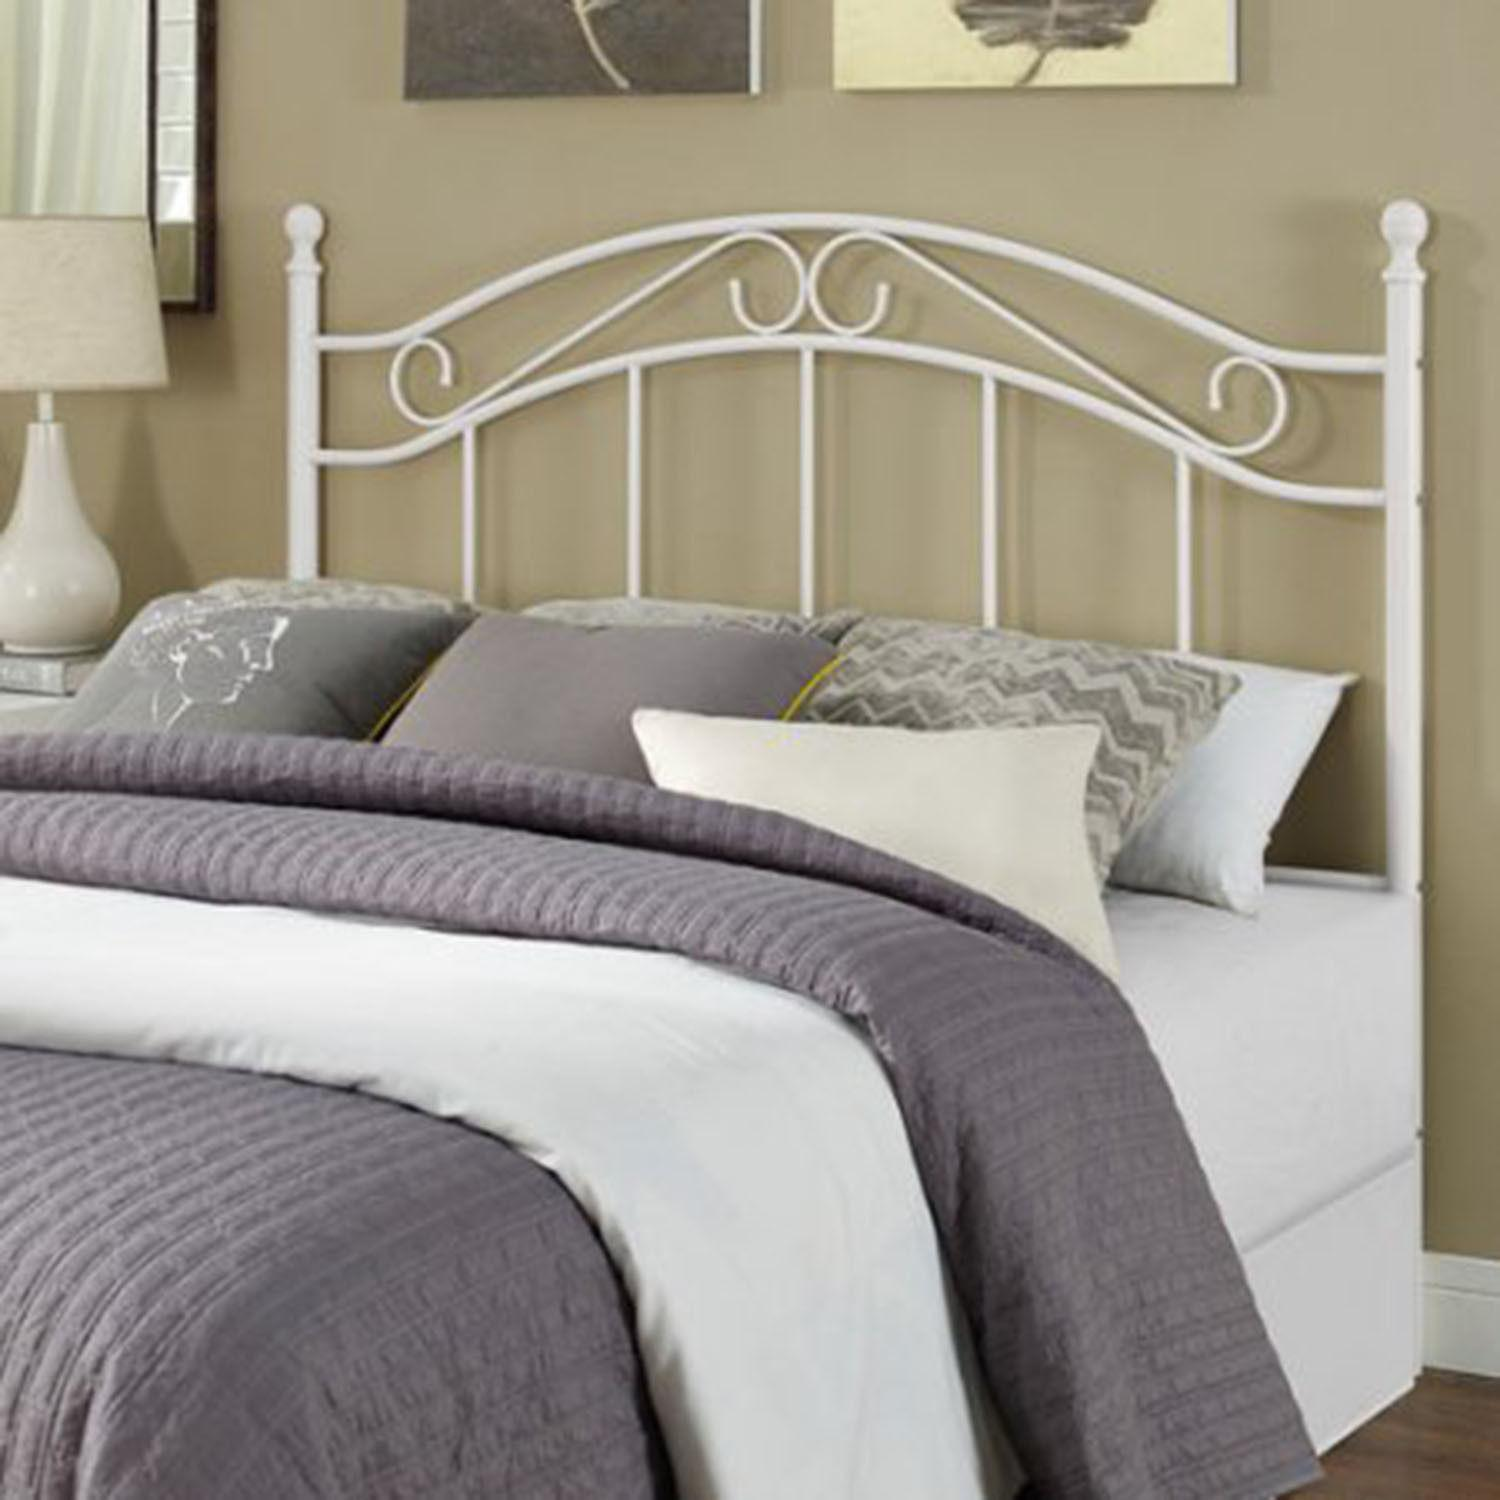 Metal Bed Headboard Frame Platform Kids Bedroom